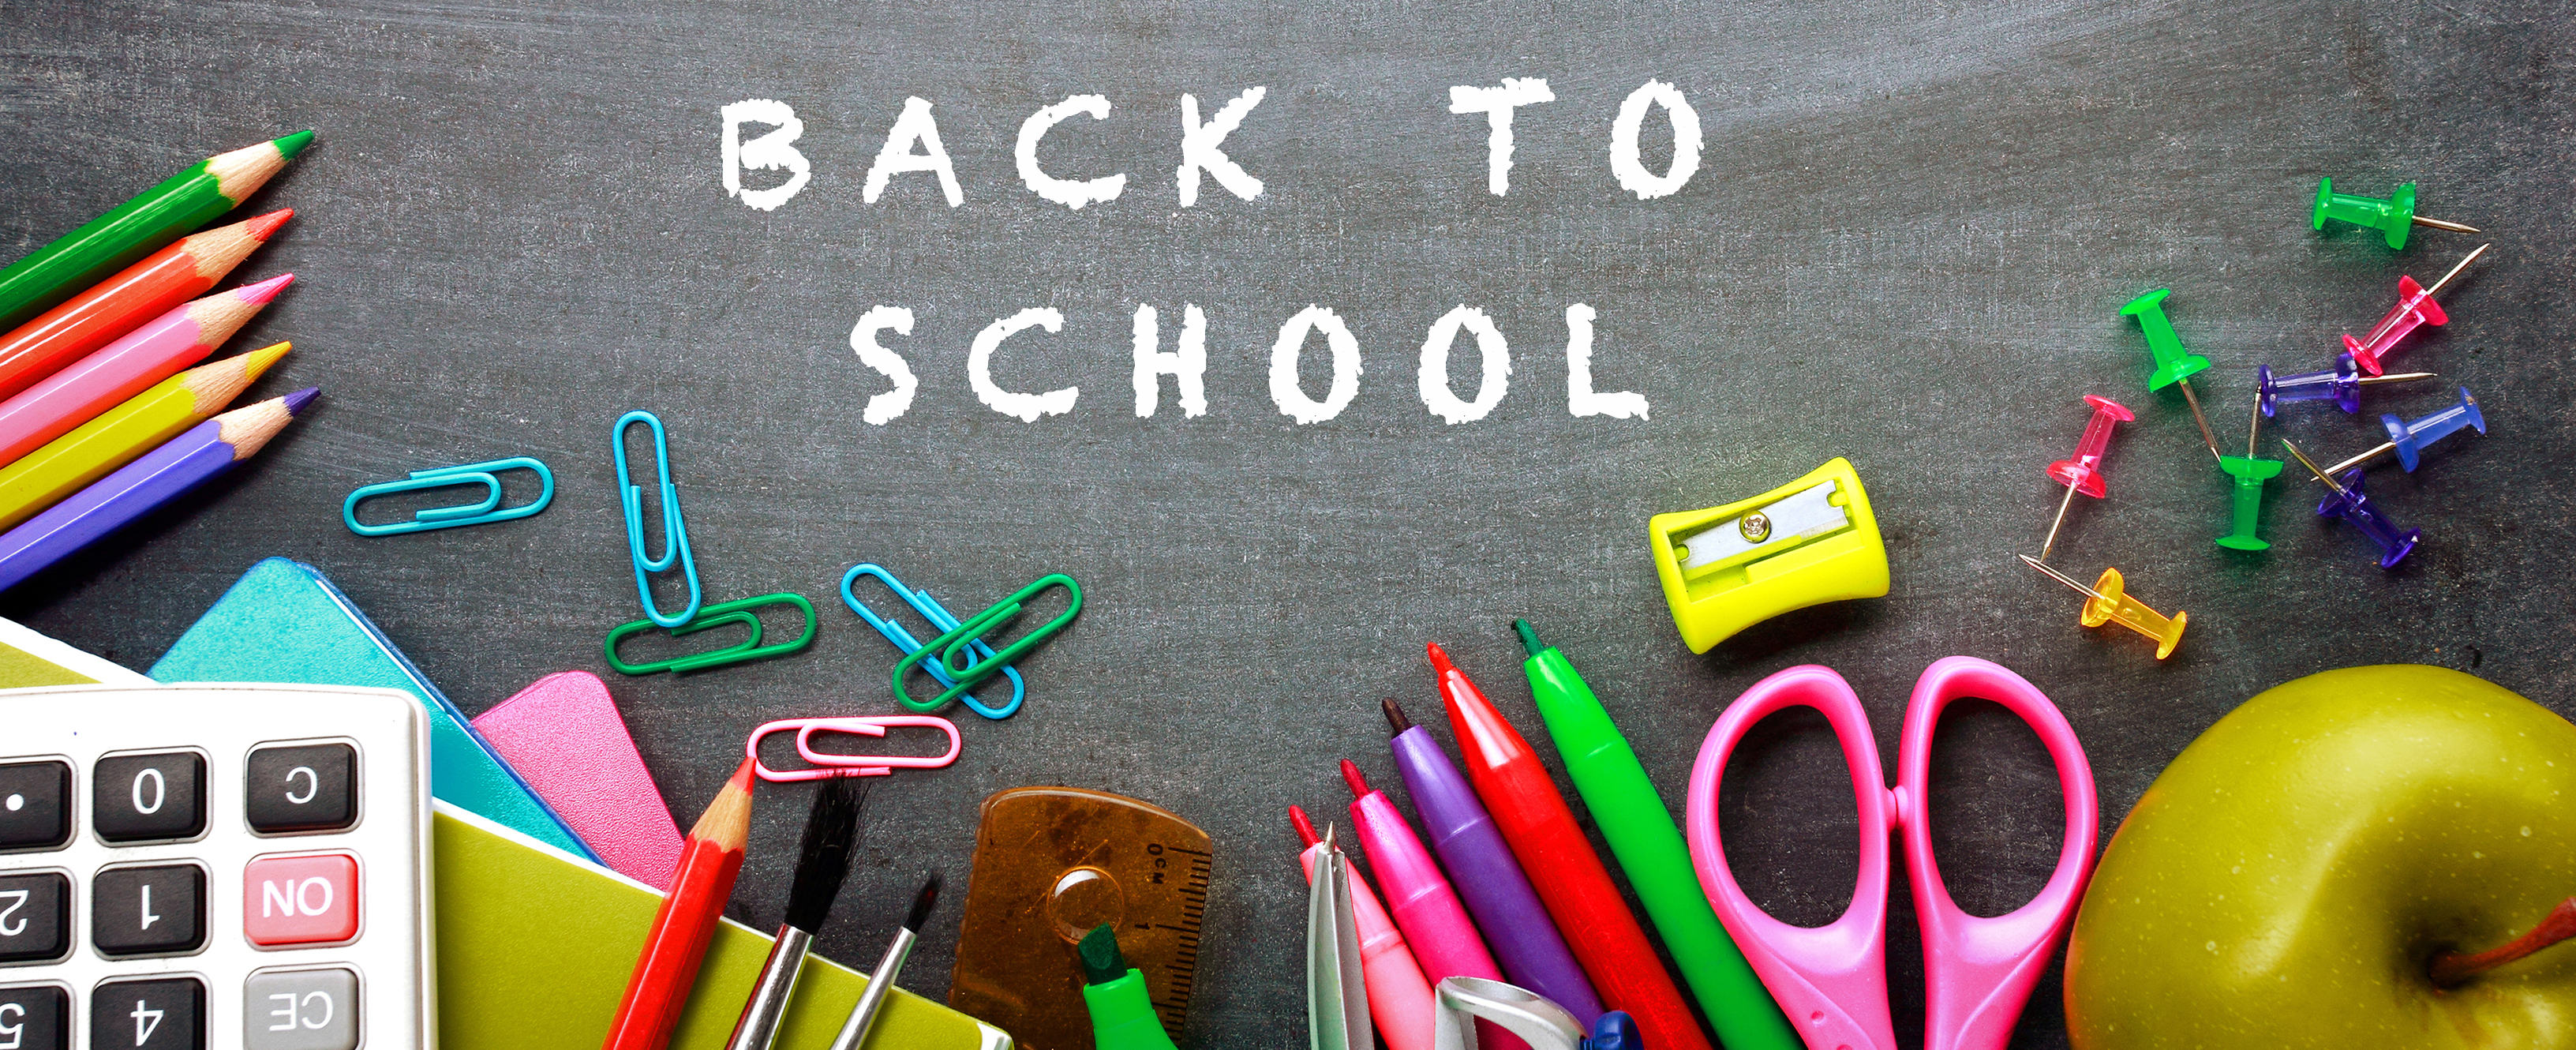 Back to School Time!